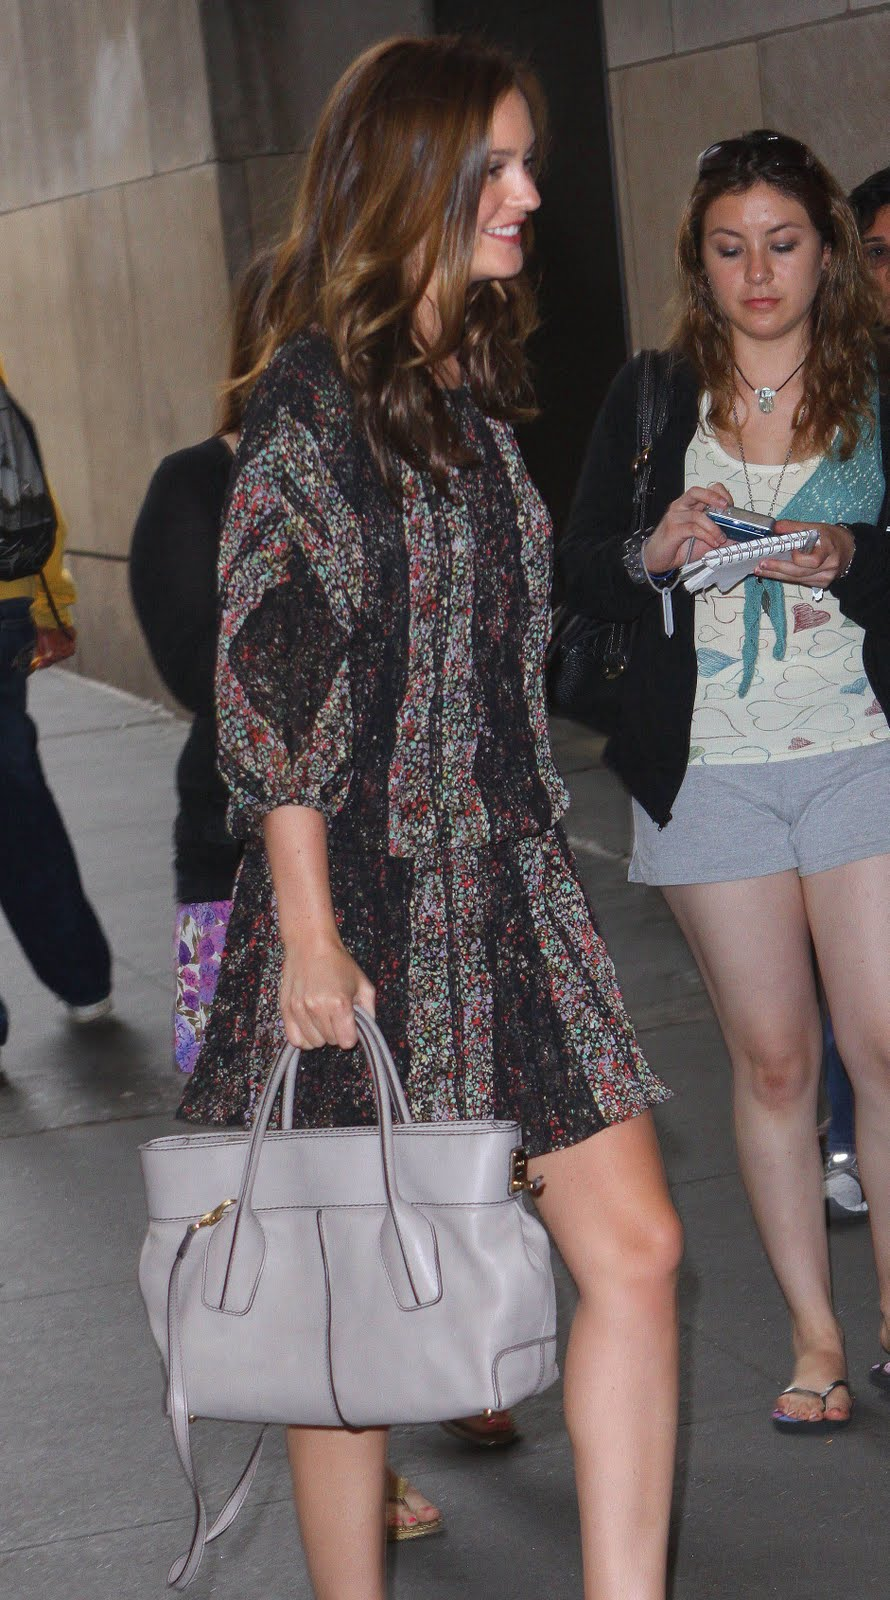 65425e621d91a Not to forget the Queen Bee that we all love, the pretty Leighton Meester  looking au corant as always with her TOD's D Bag Shopping